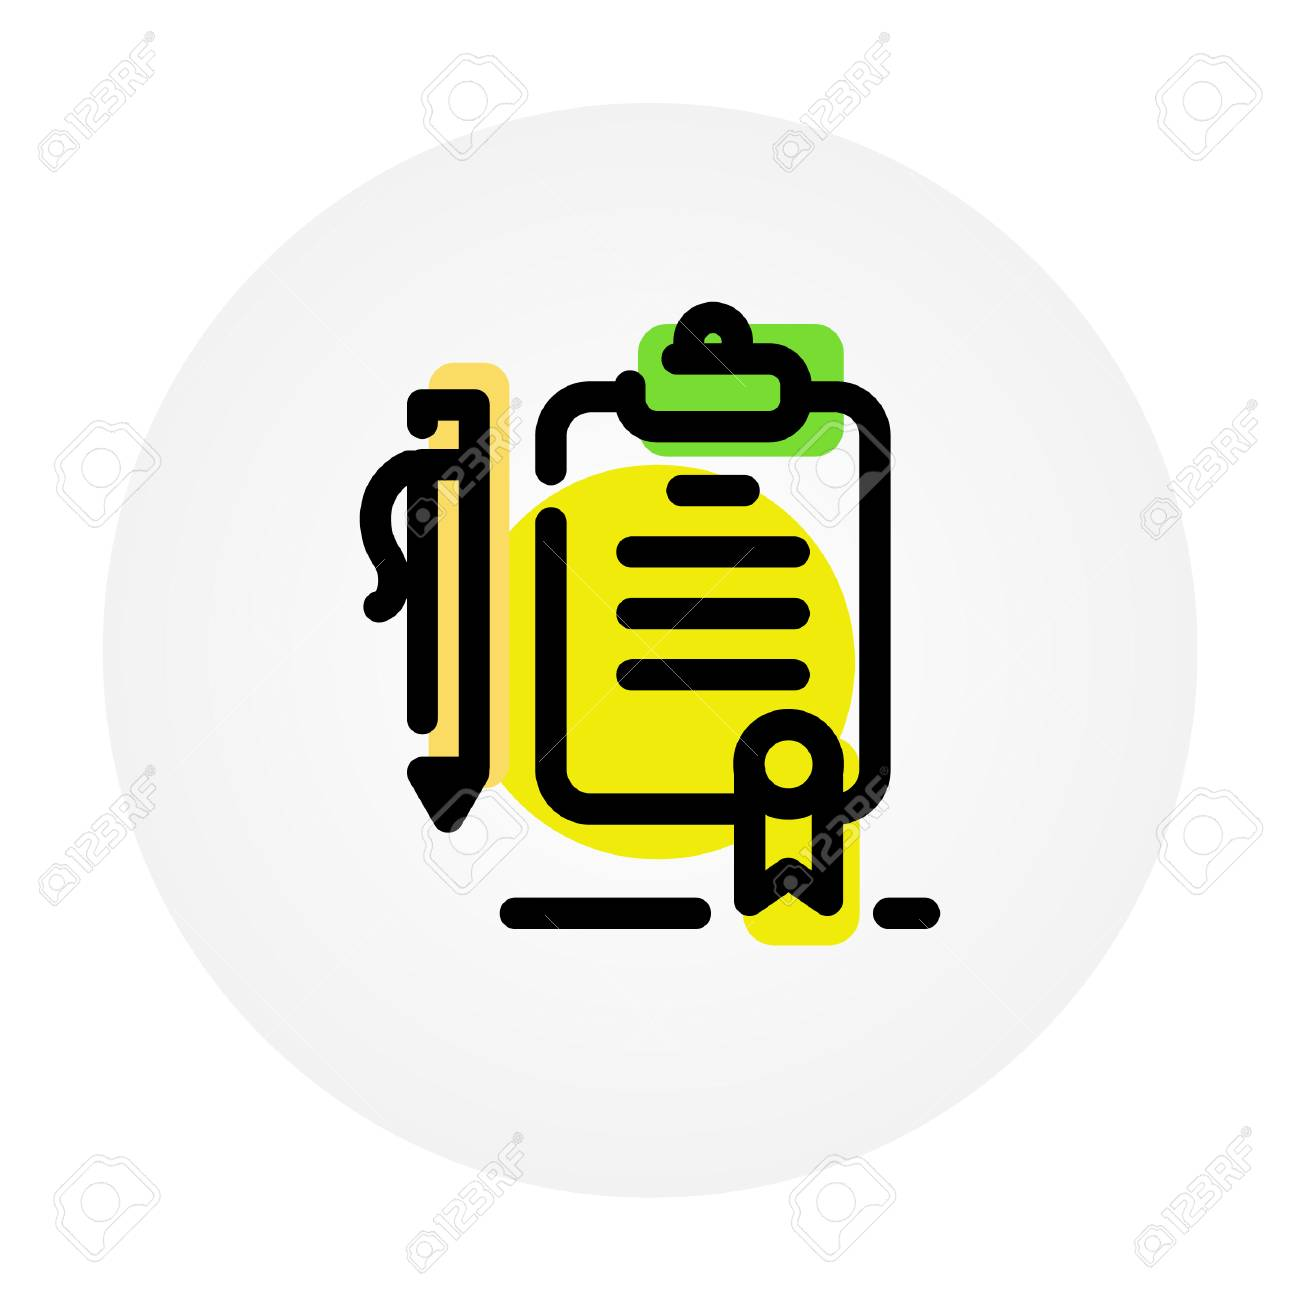 List Of Important Cases Icon Of The Tablet Folder And Pens